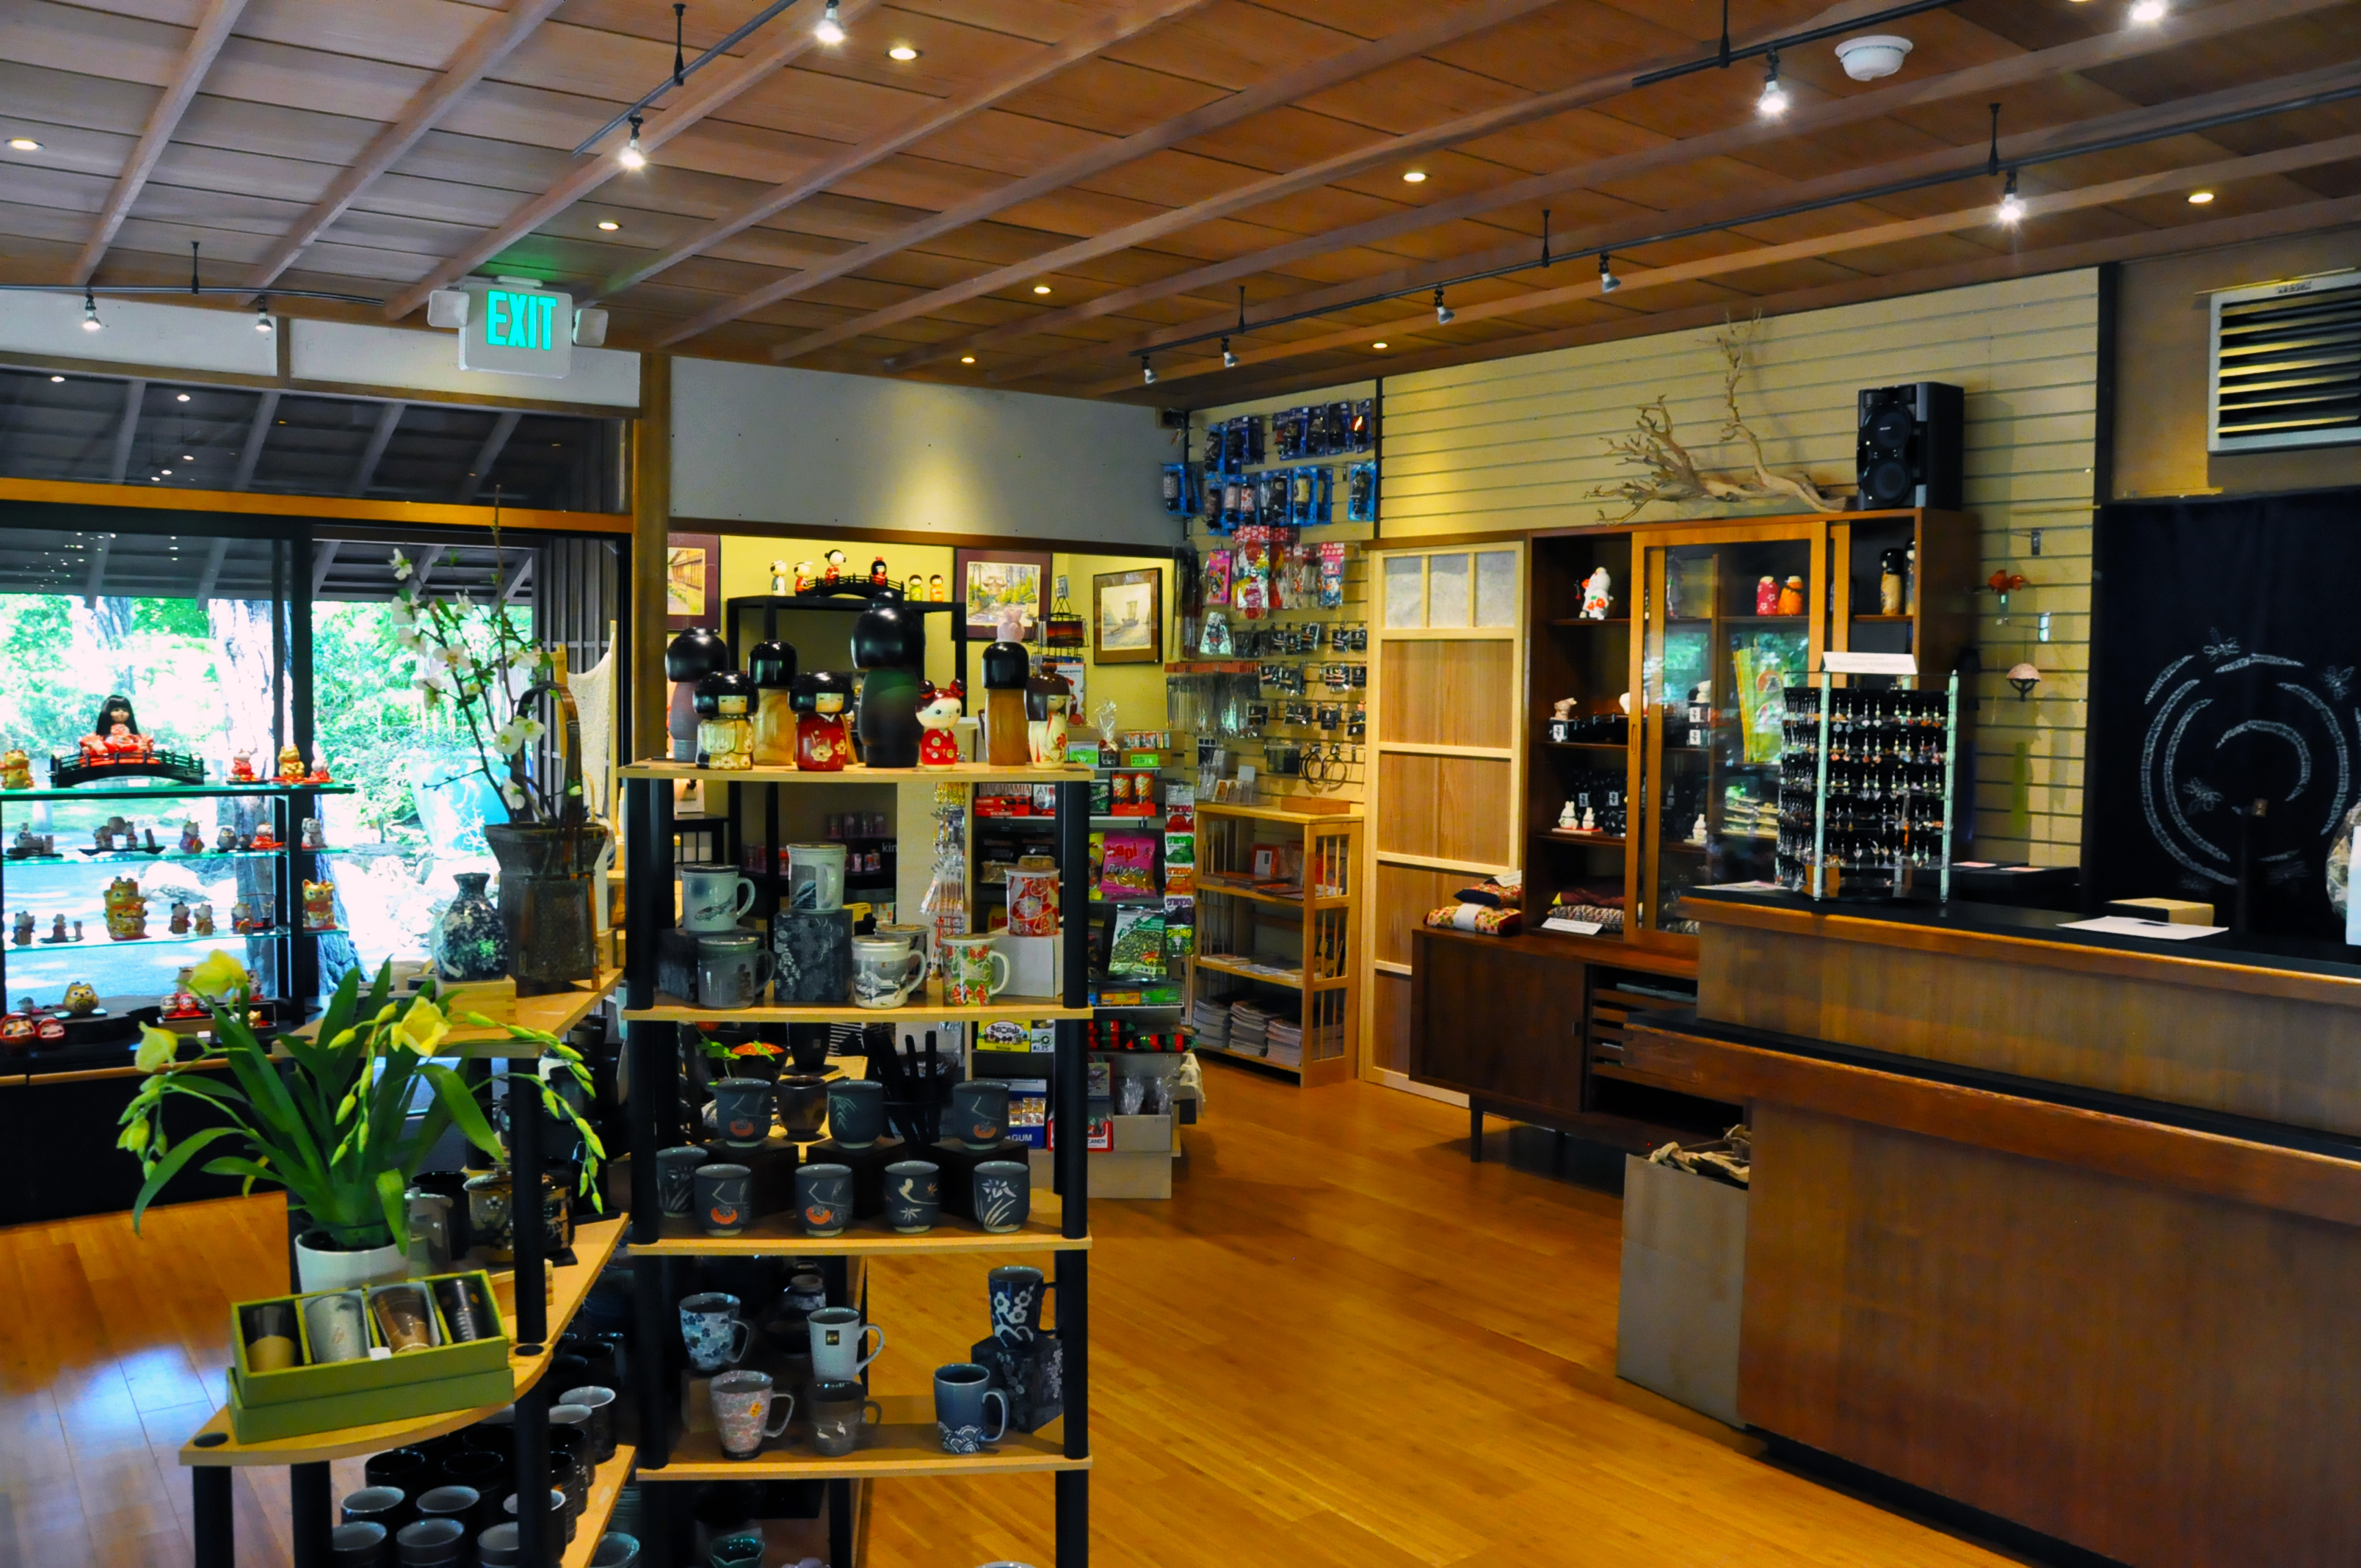 Gift Shop Interior After Renovation | Dean M. Shibuya